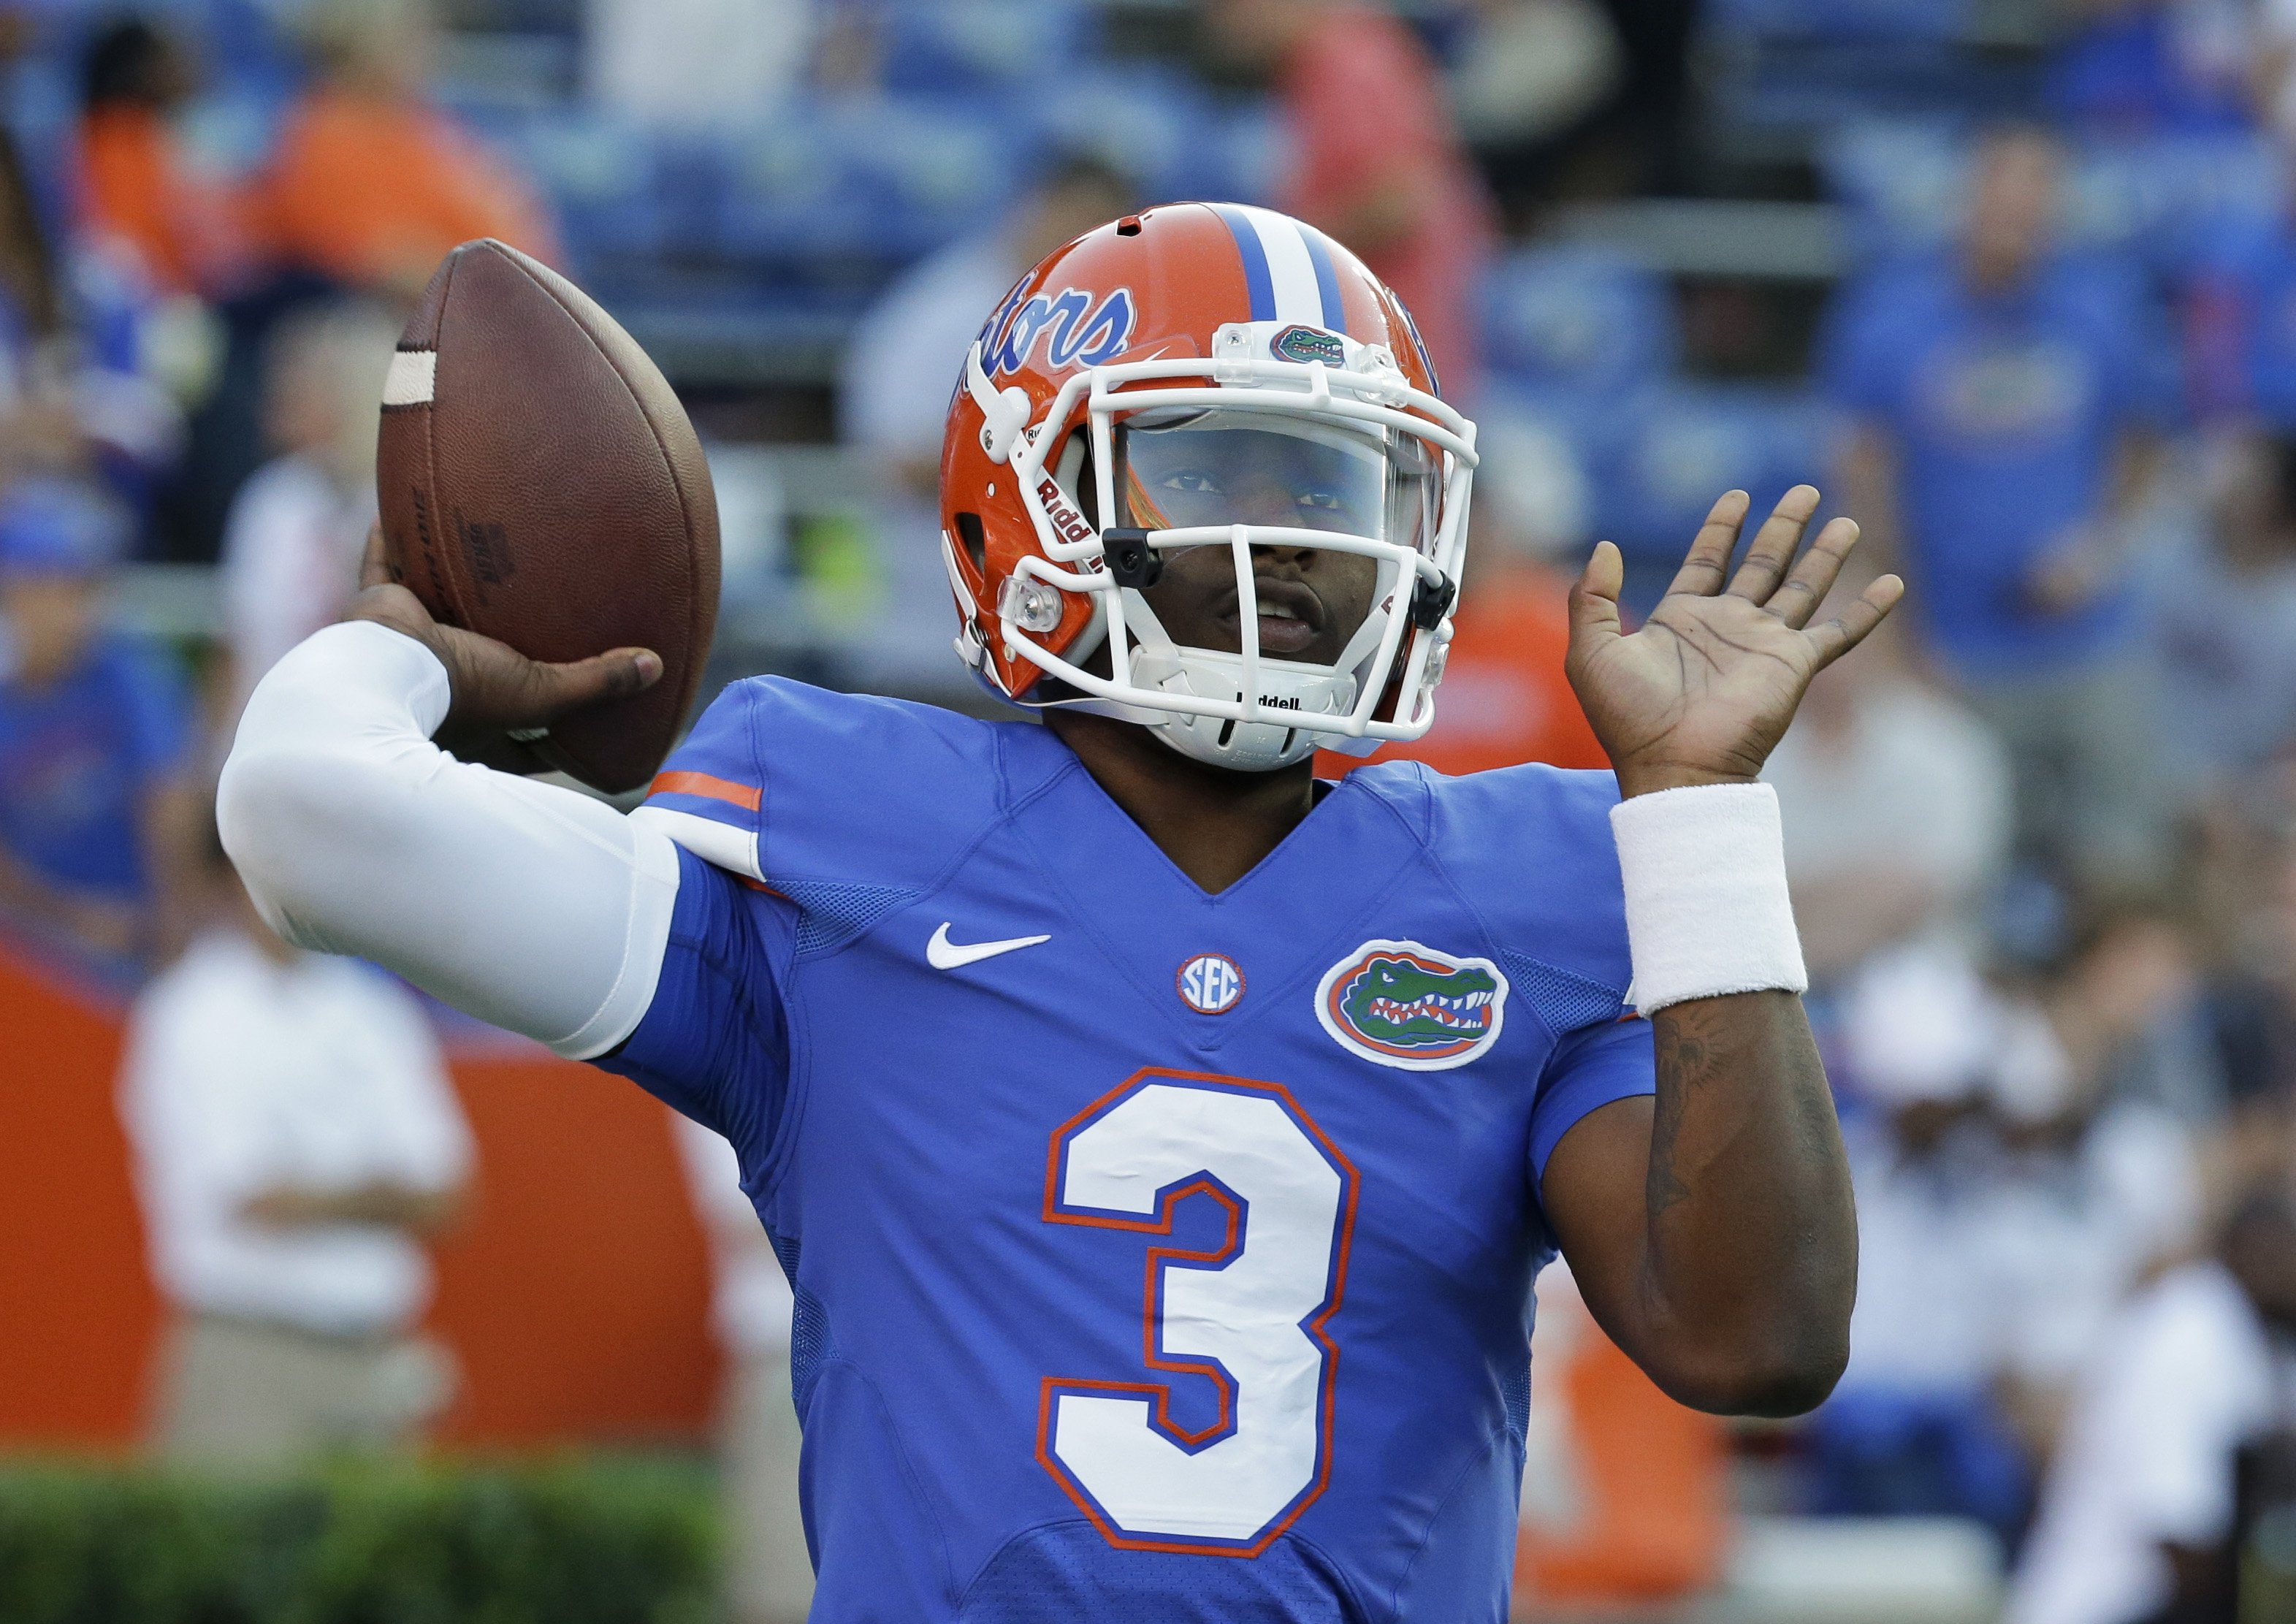 Florida quarterback Treon Harris warms up prior to an NCAA college football game against Missouri in Gainesville, Fla. on Oct. 18, 2014.